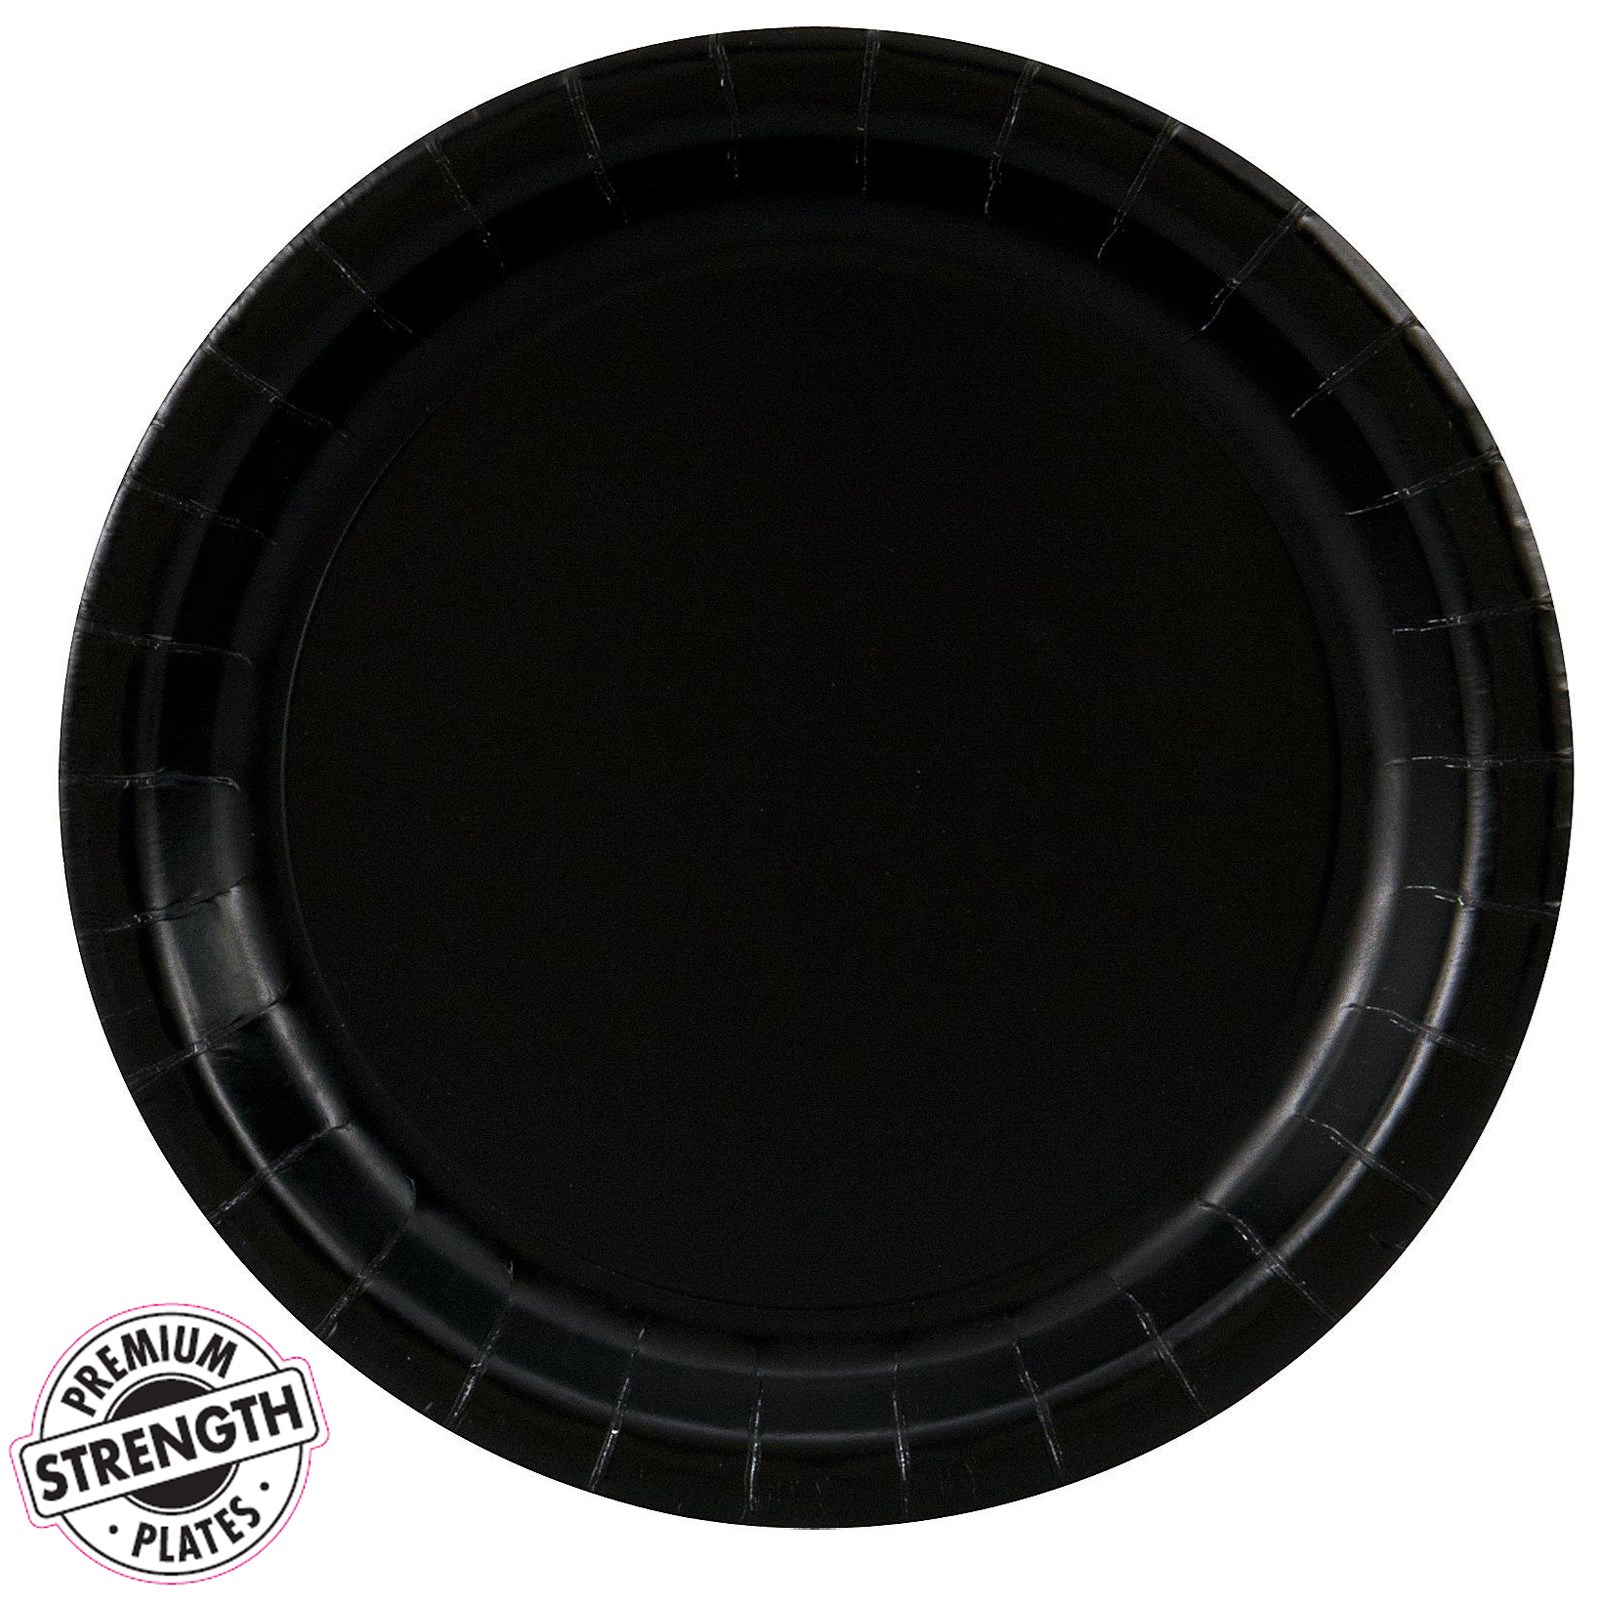 black velvet black dinner plates 24 count. Black Bedroom Furniture Sets. Home Design Ideas